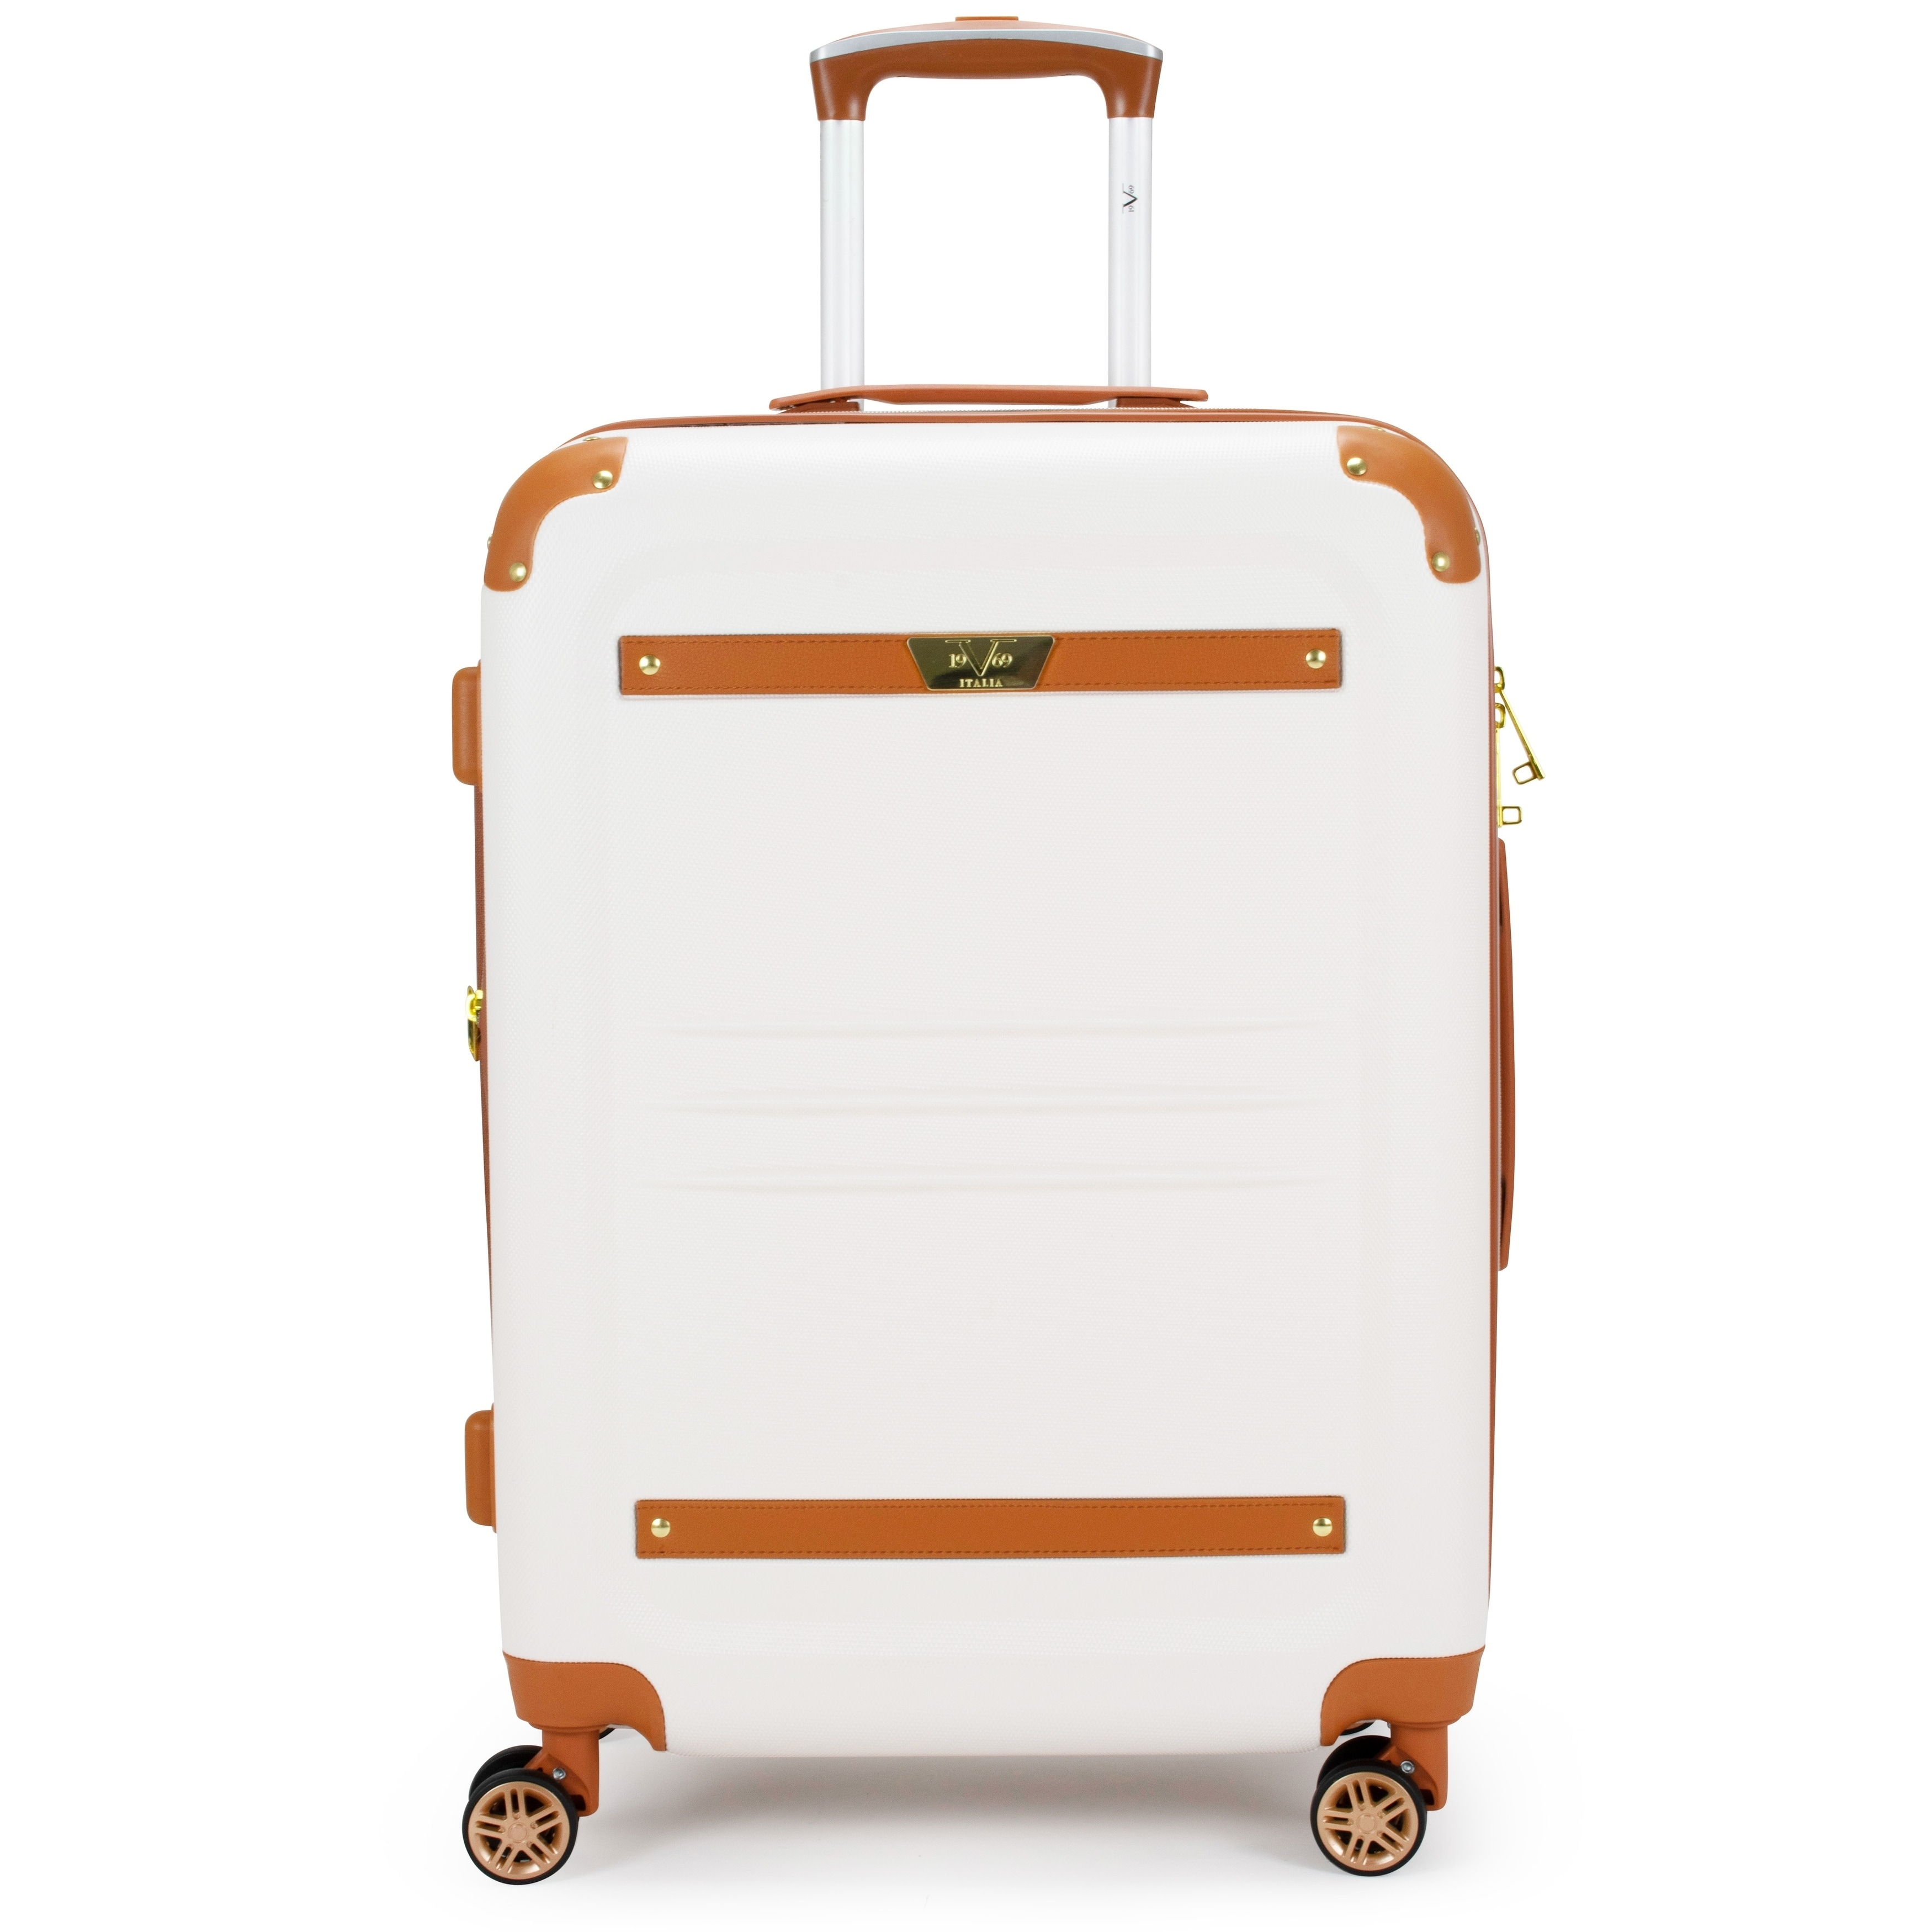 fc1fb0b25 Shop 19V69 Italia Vintage Expandable Hard Spinner Luggage 2 Piece Set -  Free Shipping Today - Overstock - 28178840